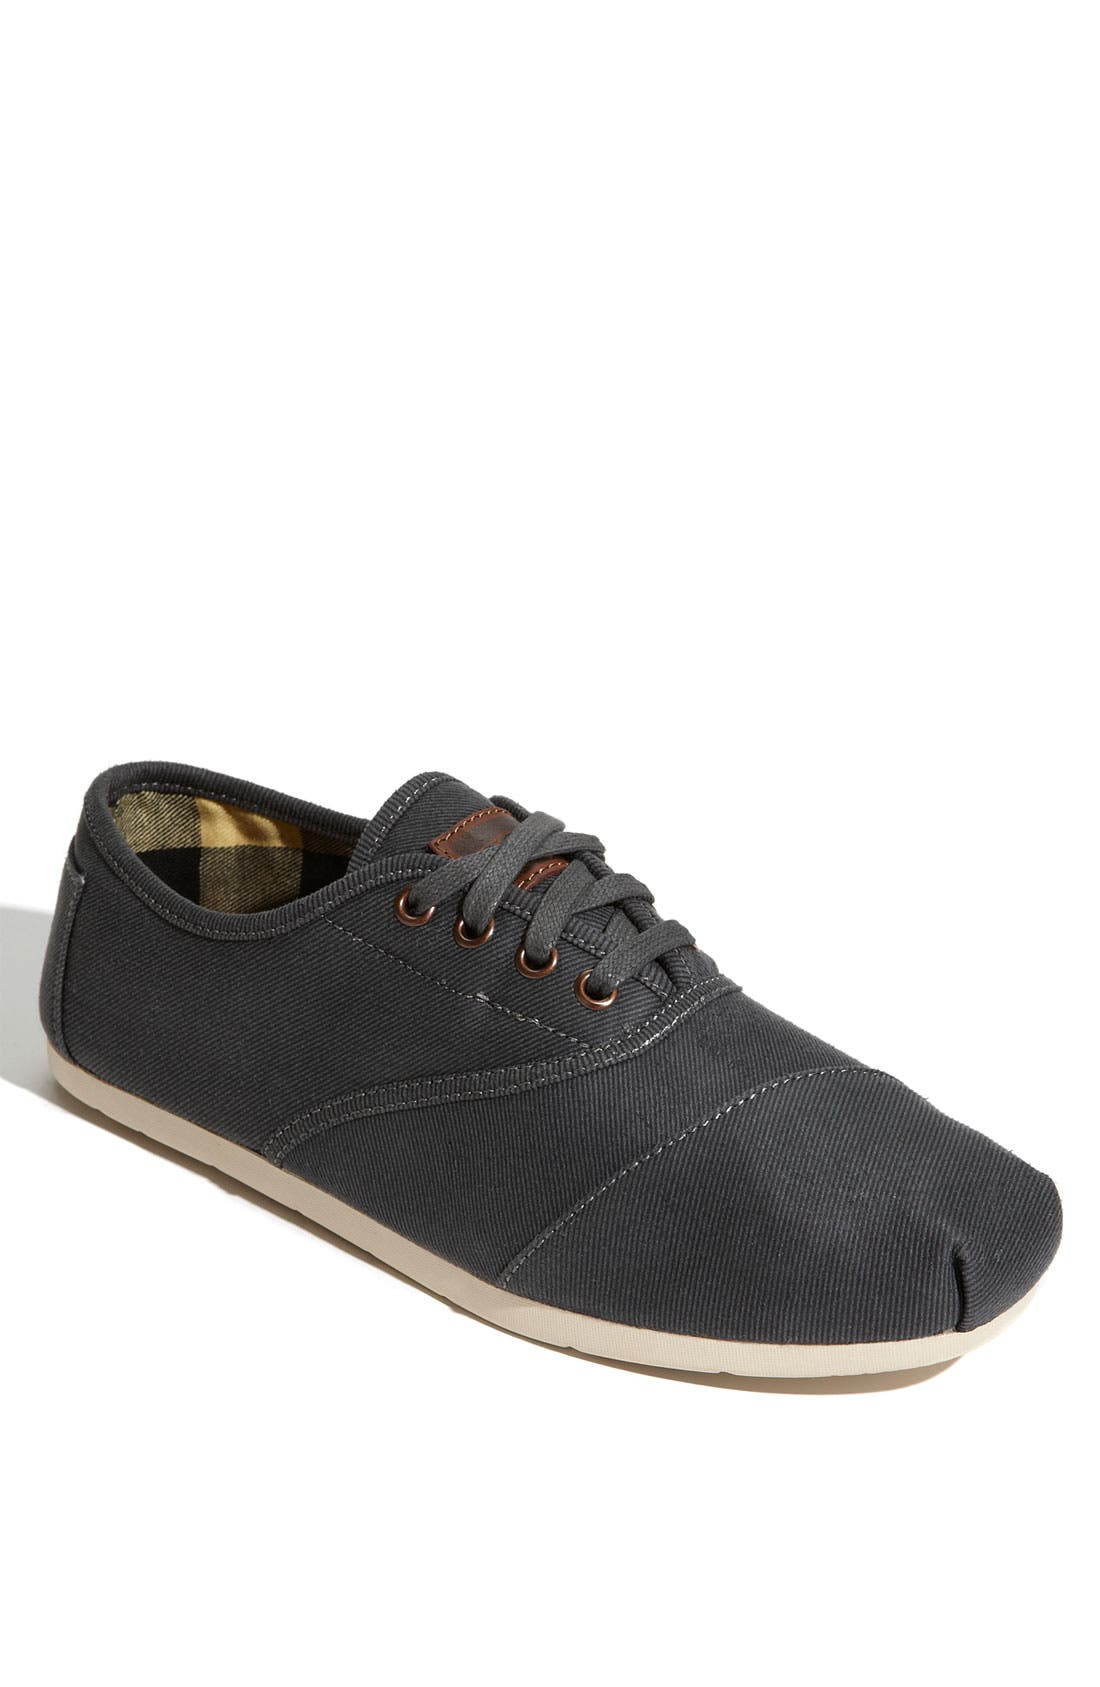 Main Image - TOMS 'Cordones' Waxed Canvas Sneaker (Men)